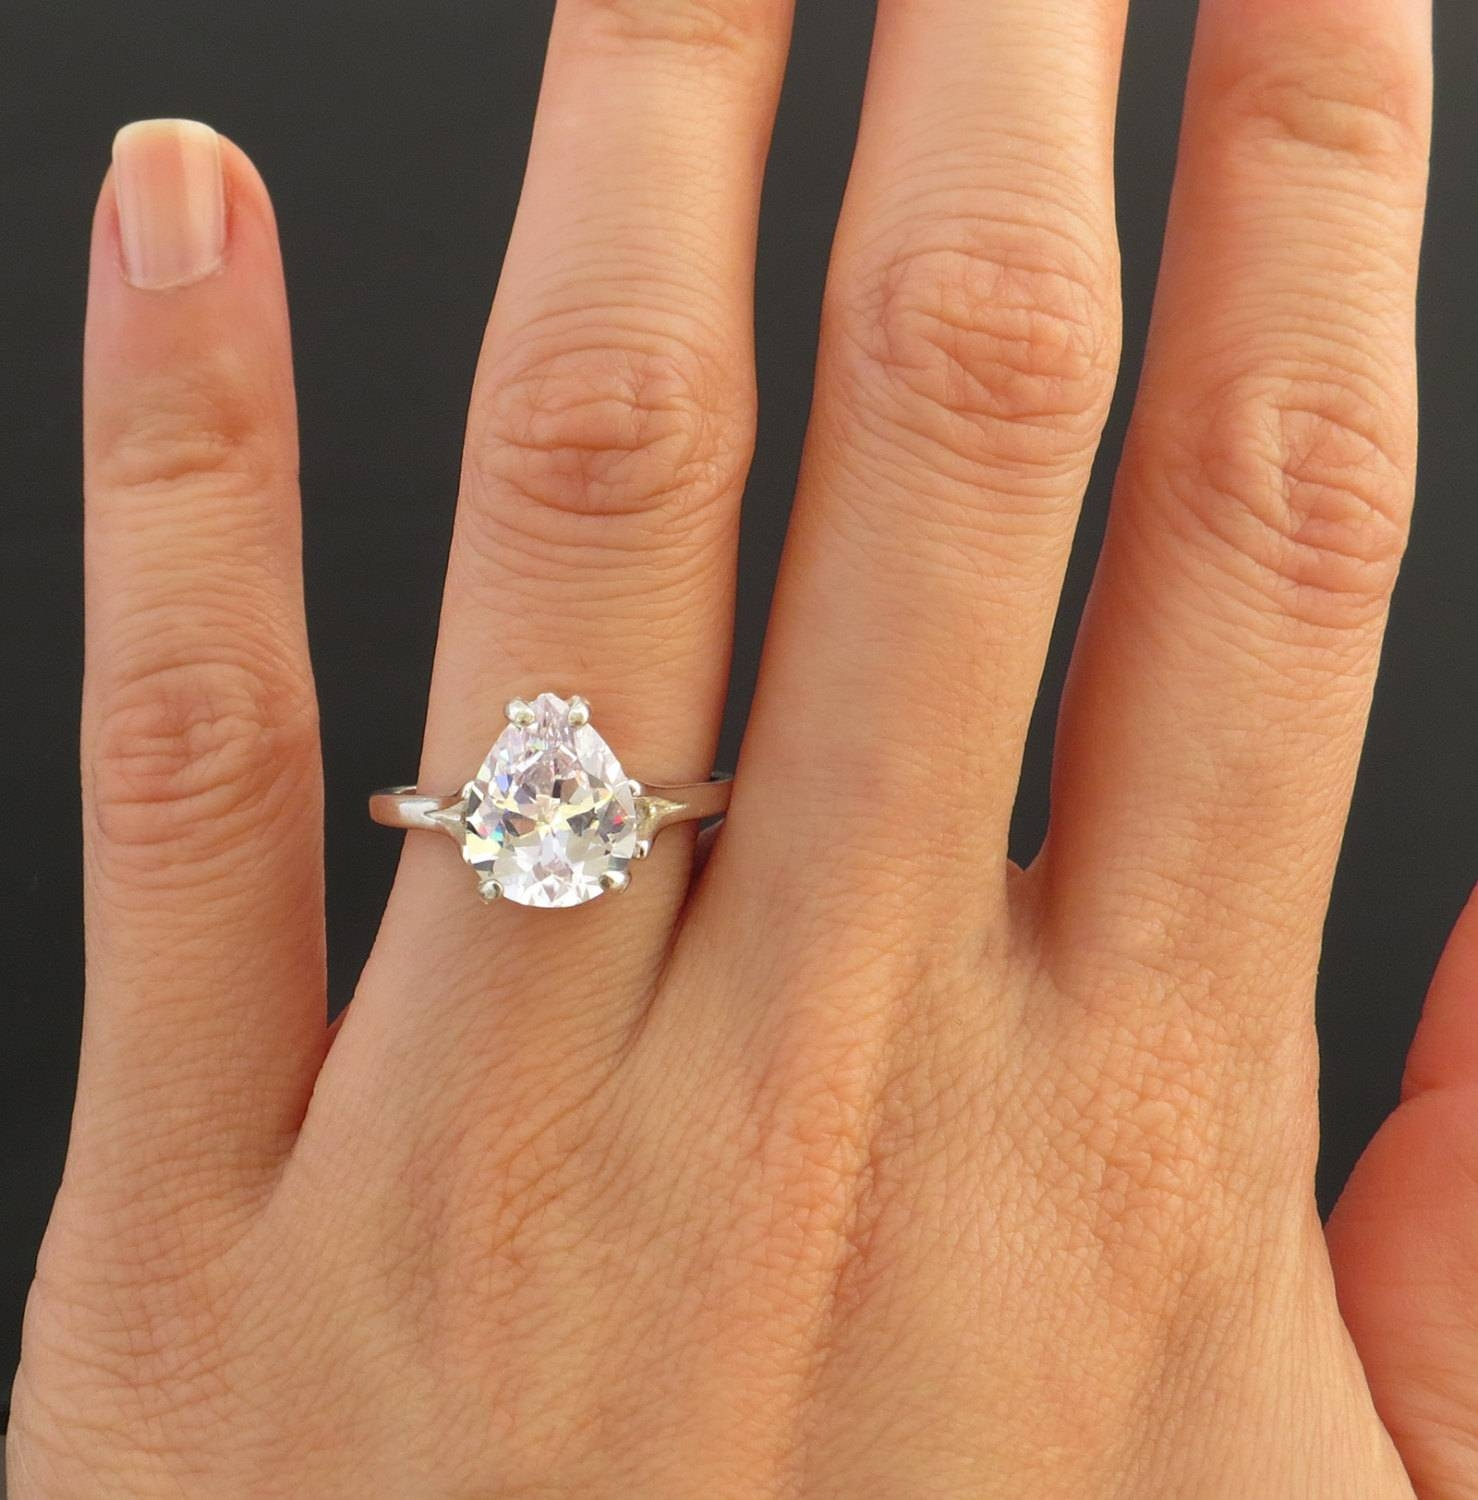 5 Carat Solitaire Diamond Ring Regarding 5 Carat Diamond Wedding Rings (View 4 of 15)